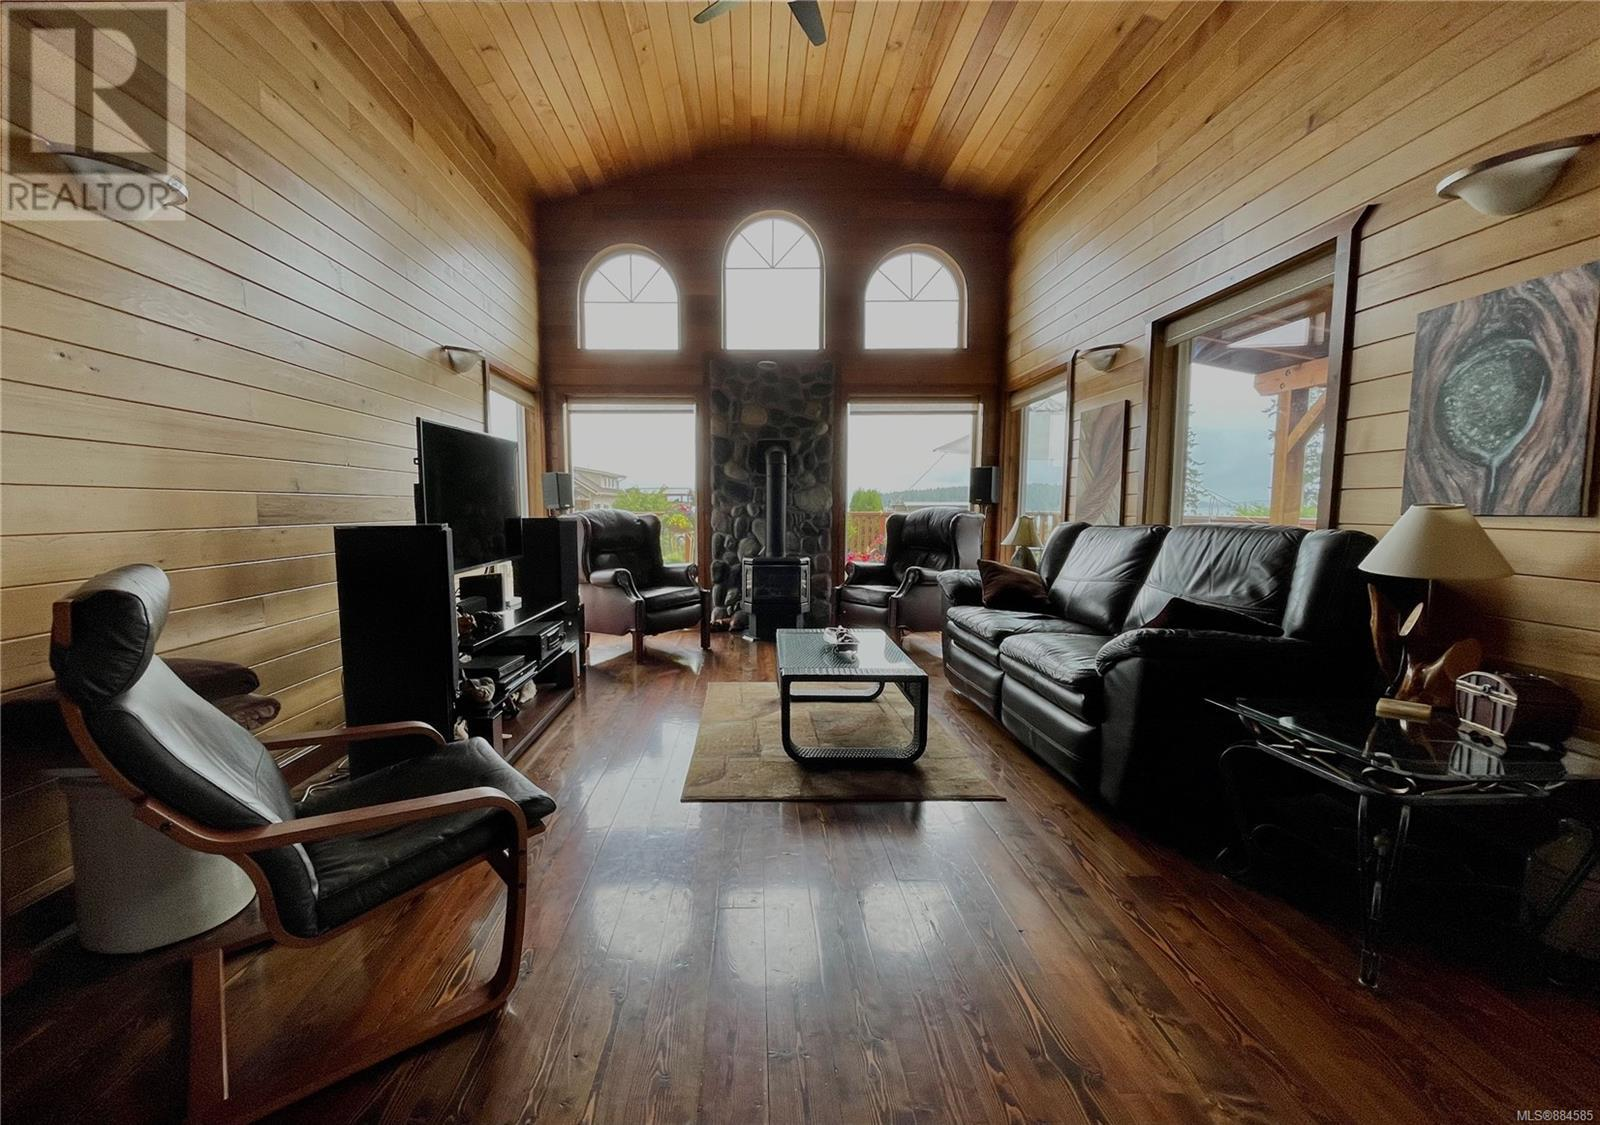 MLS® #884585 - Ucluelet House For sale Image #5